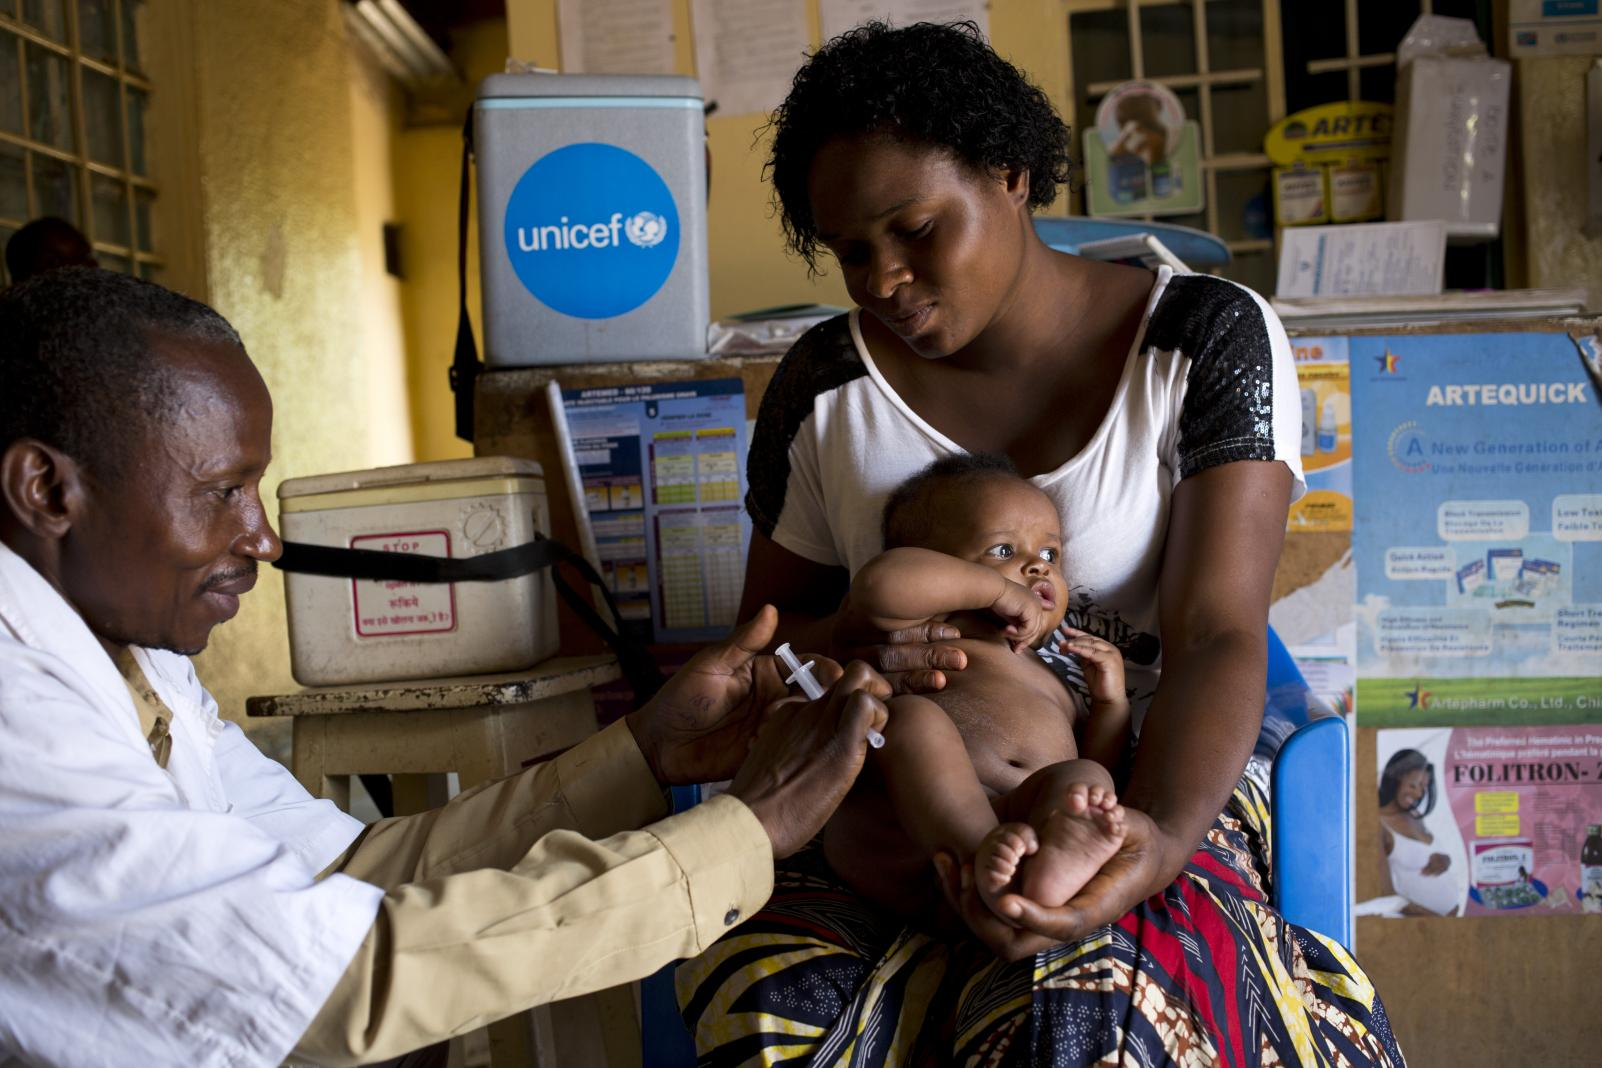 More than 117 million kids at danger of missing out on measles vaccines, as COVID-19 surges